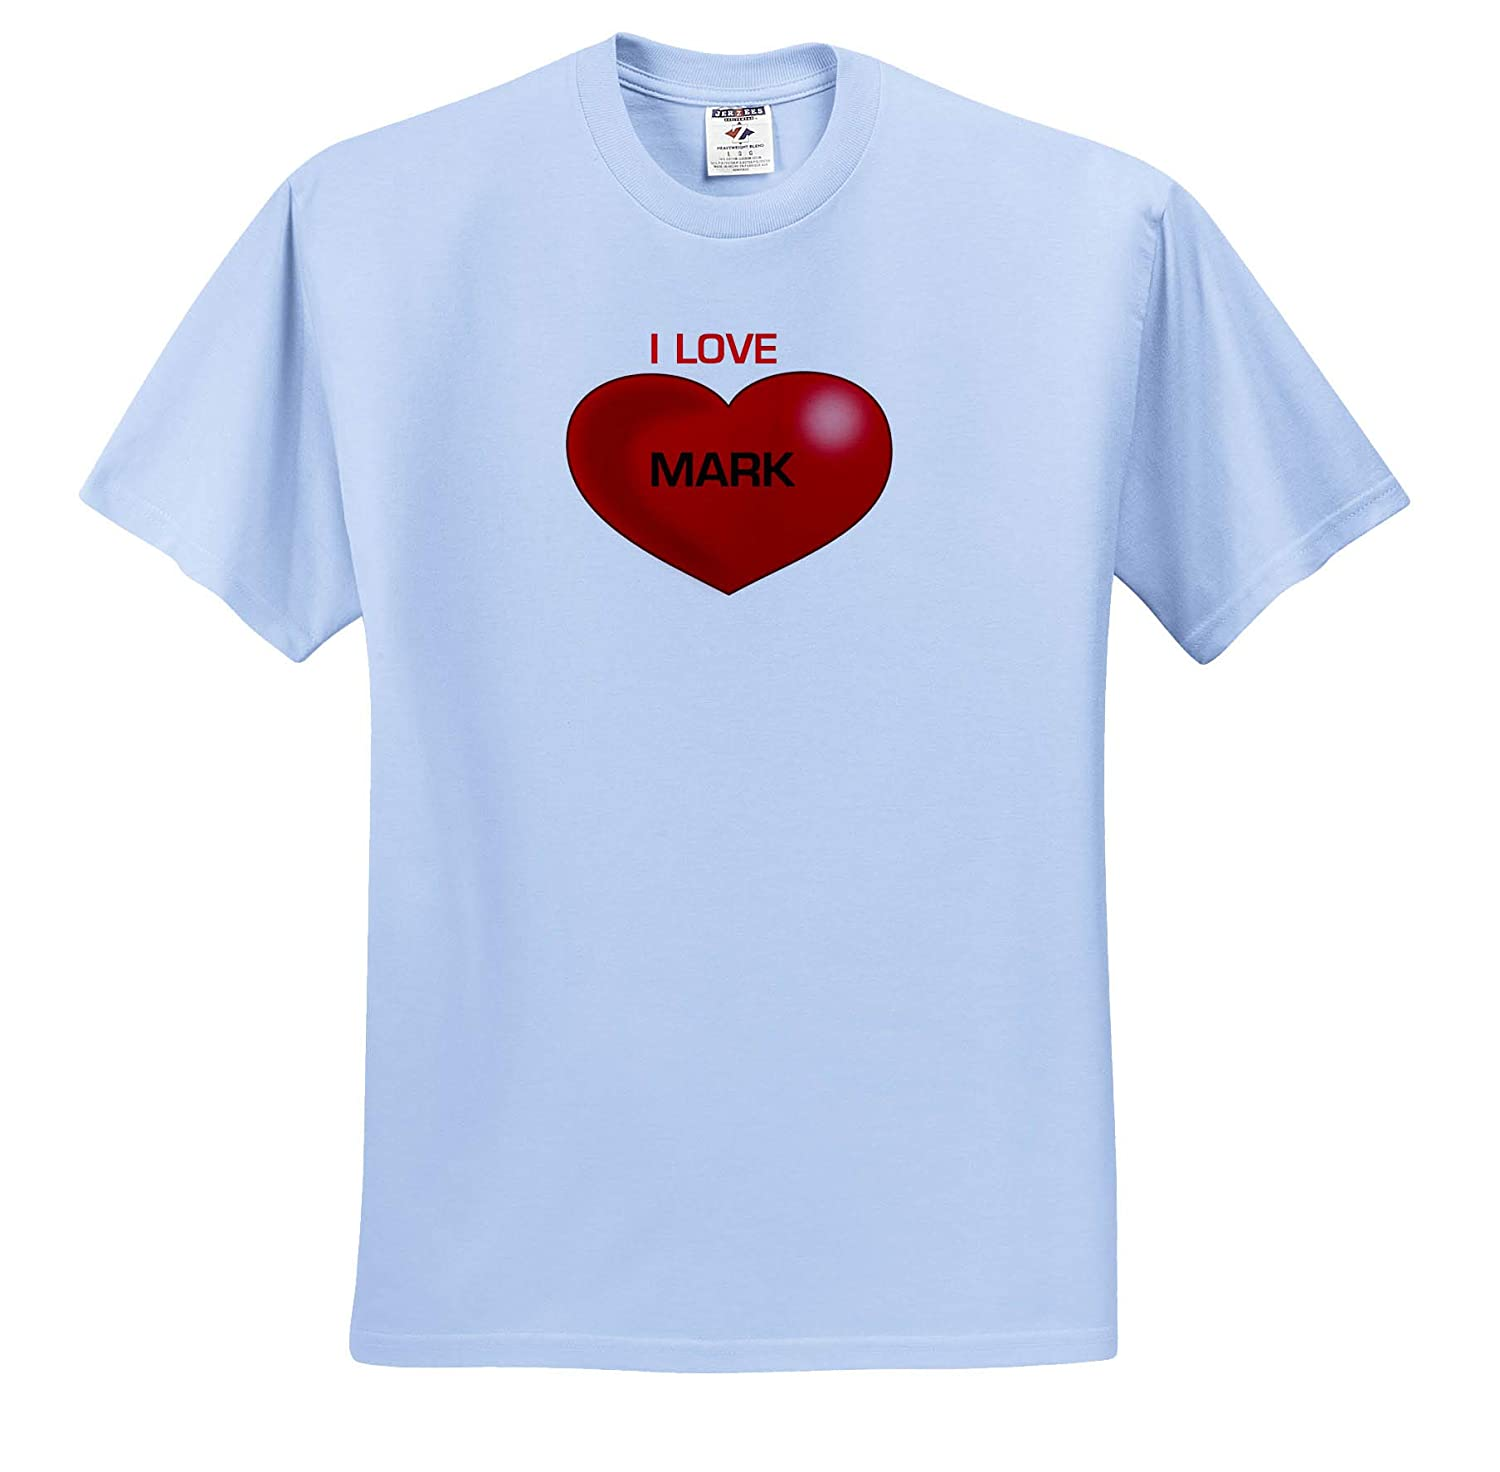 Love Hearts with Names 3dRose Lens Art by Florene Image of Mark I Love You with Giant Red Heart T-Shirts